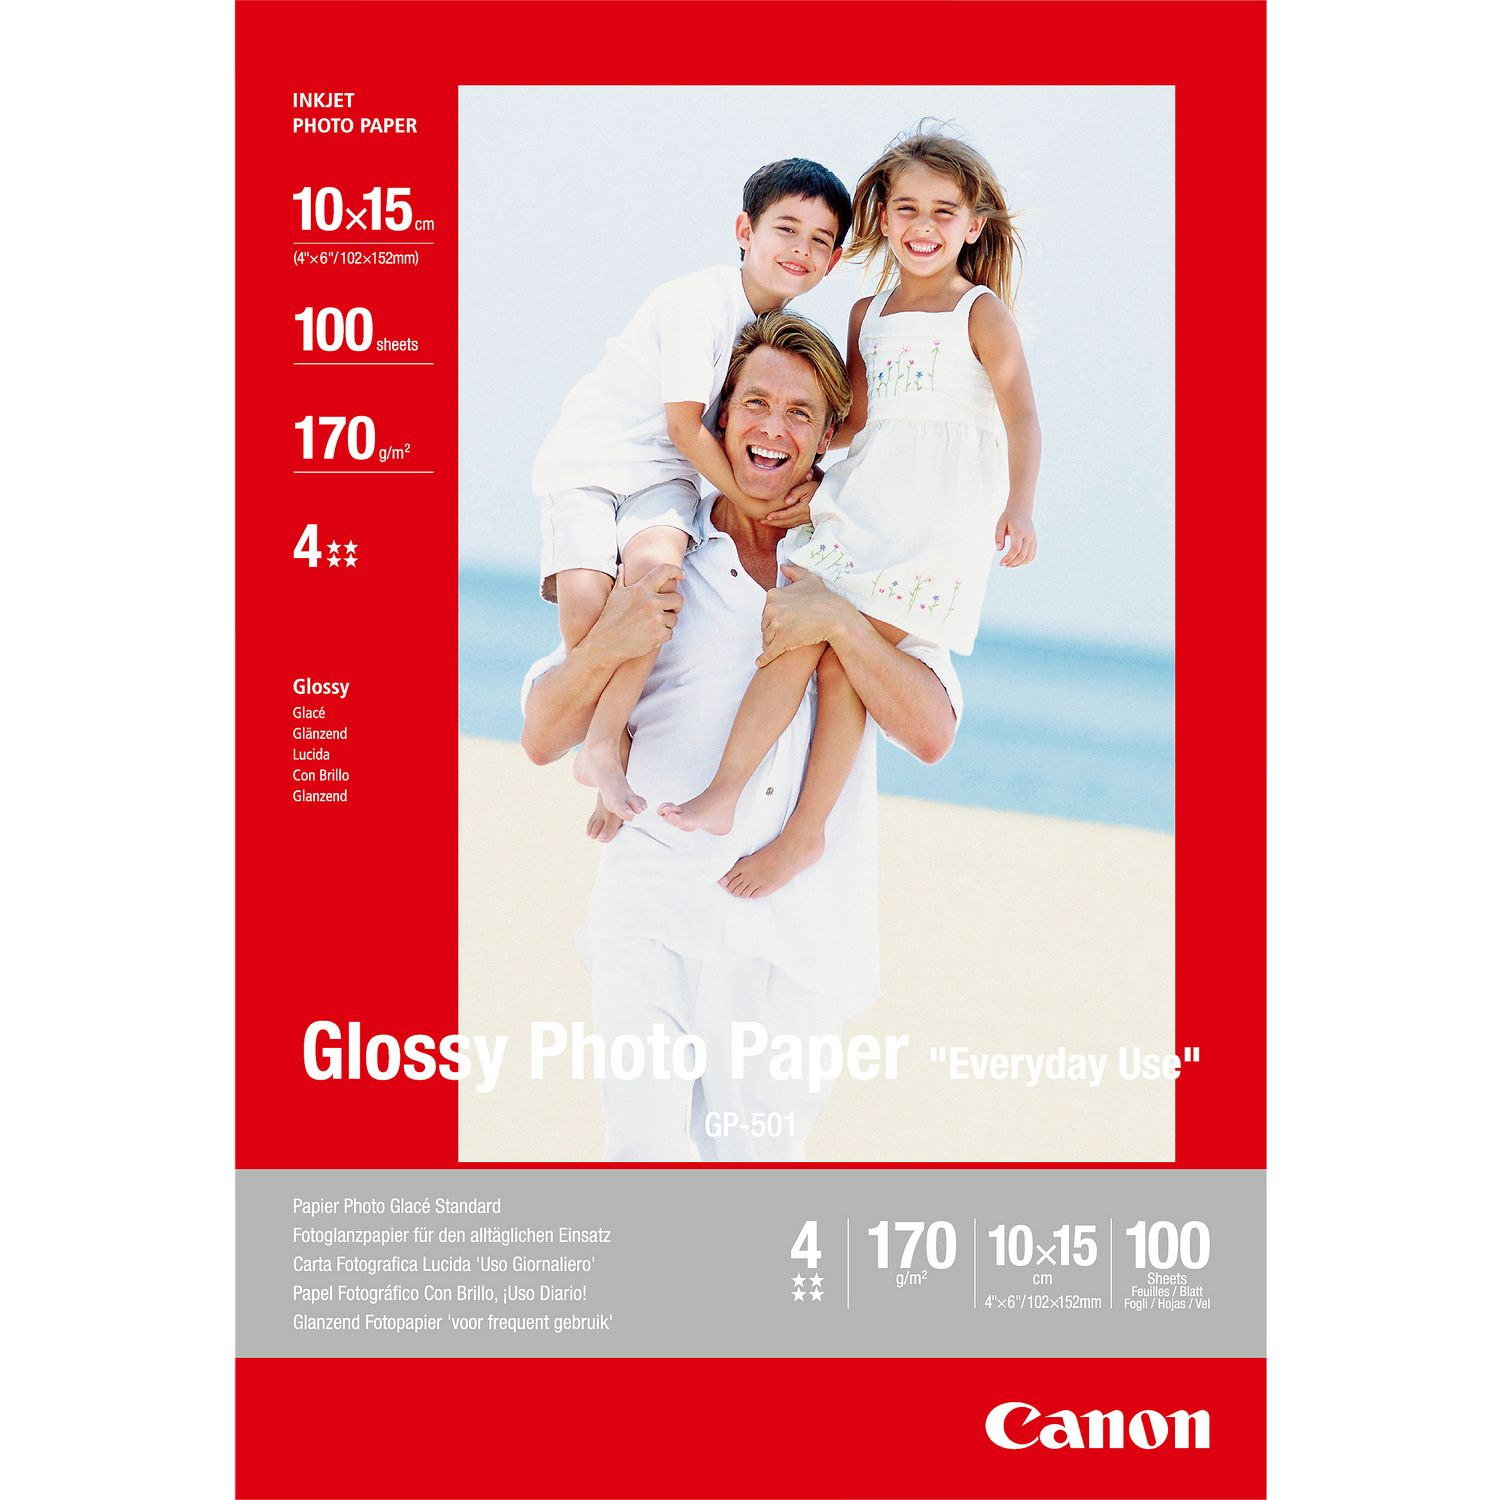 Canon 0775B003 GP501 Gloss Photo Paper 10x15cm 100 Sheets